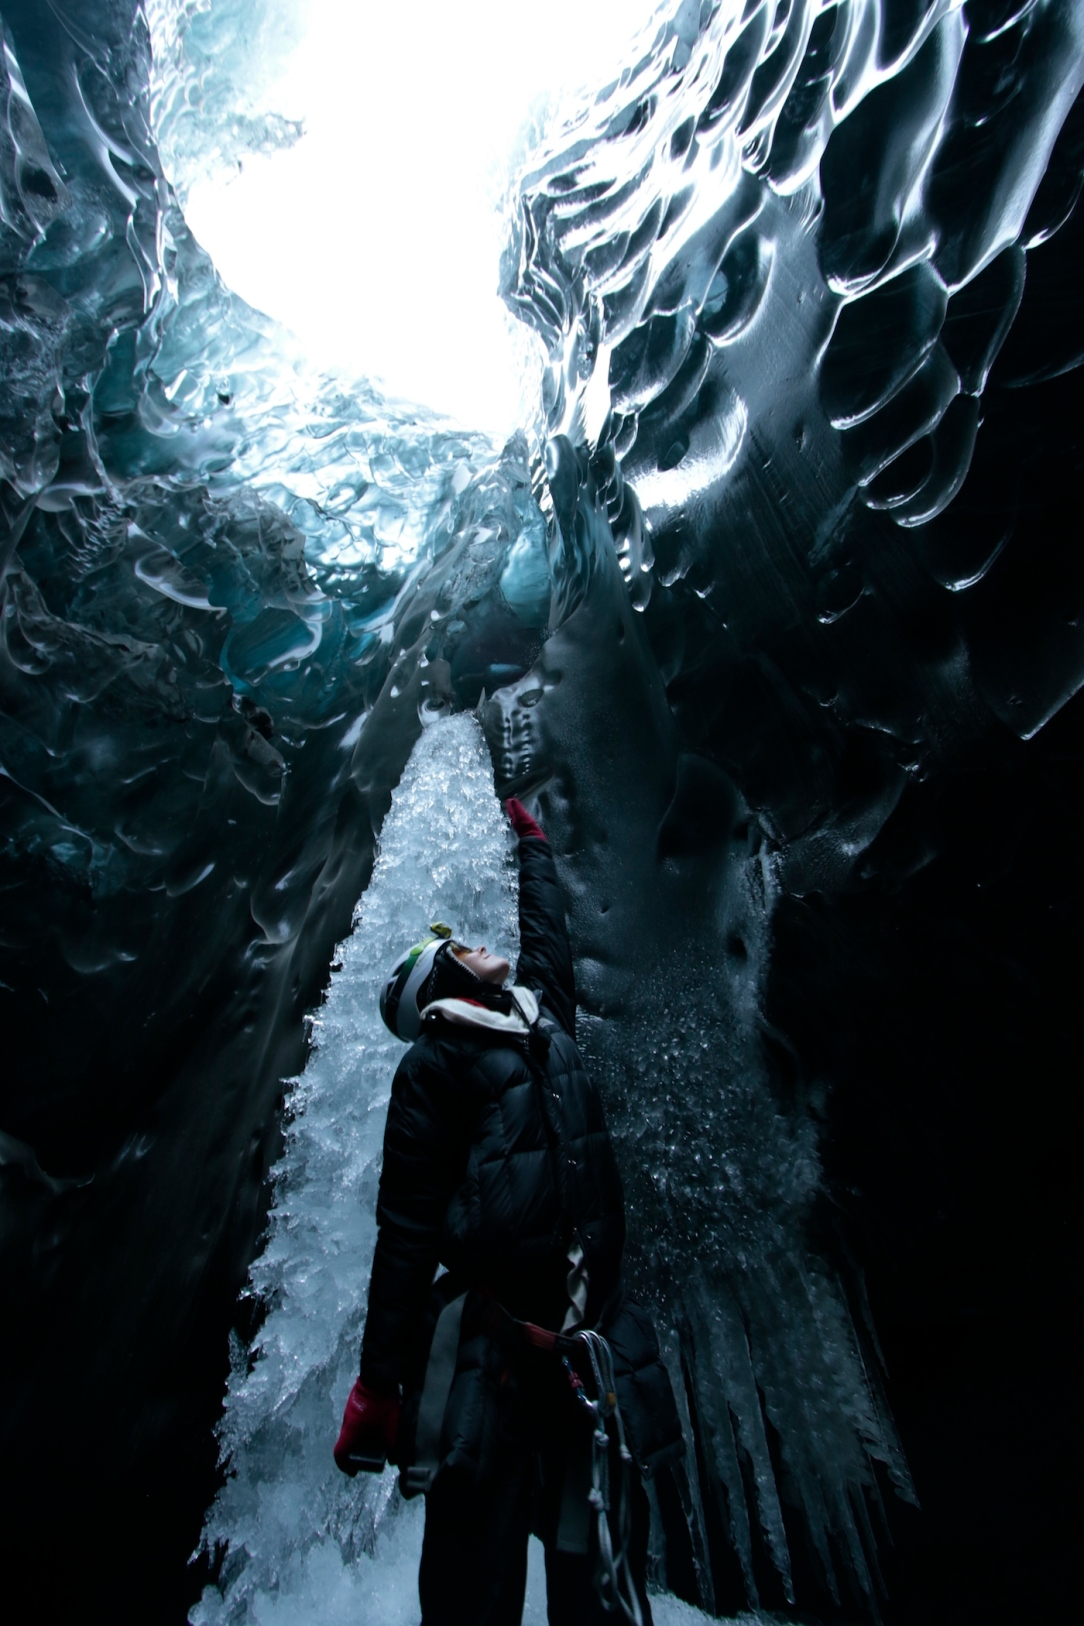 iceland_ice_cave_6